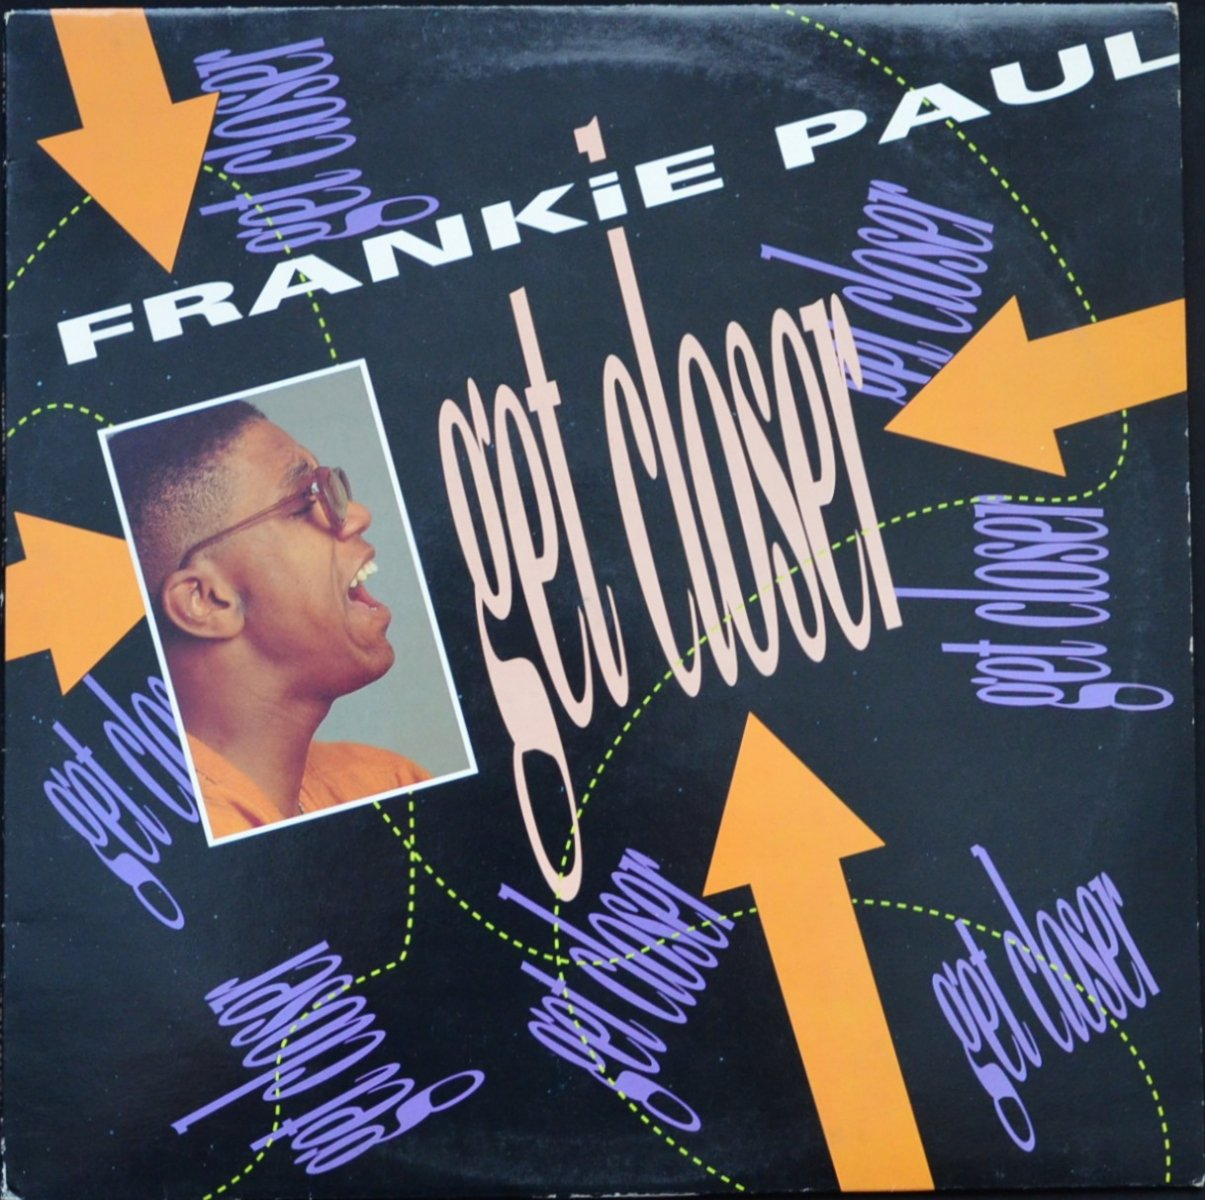 FRANKIE PAUL ‎/ GET CLOSER (1LP)